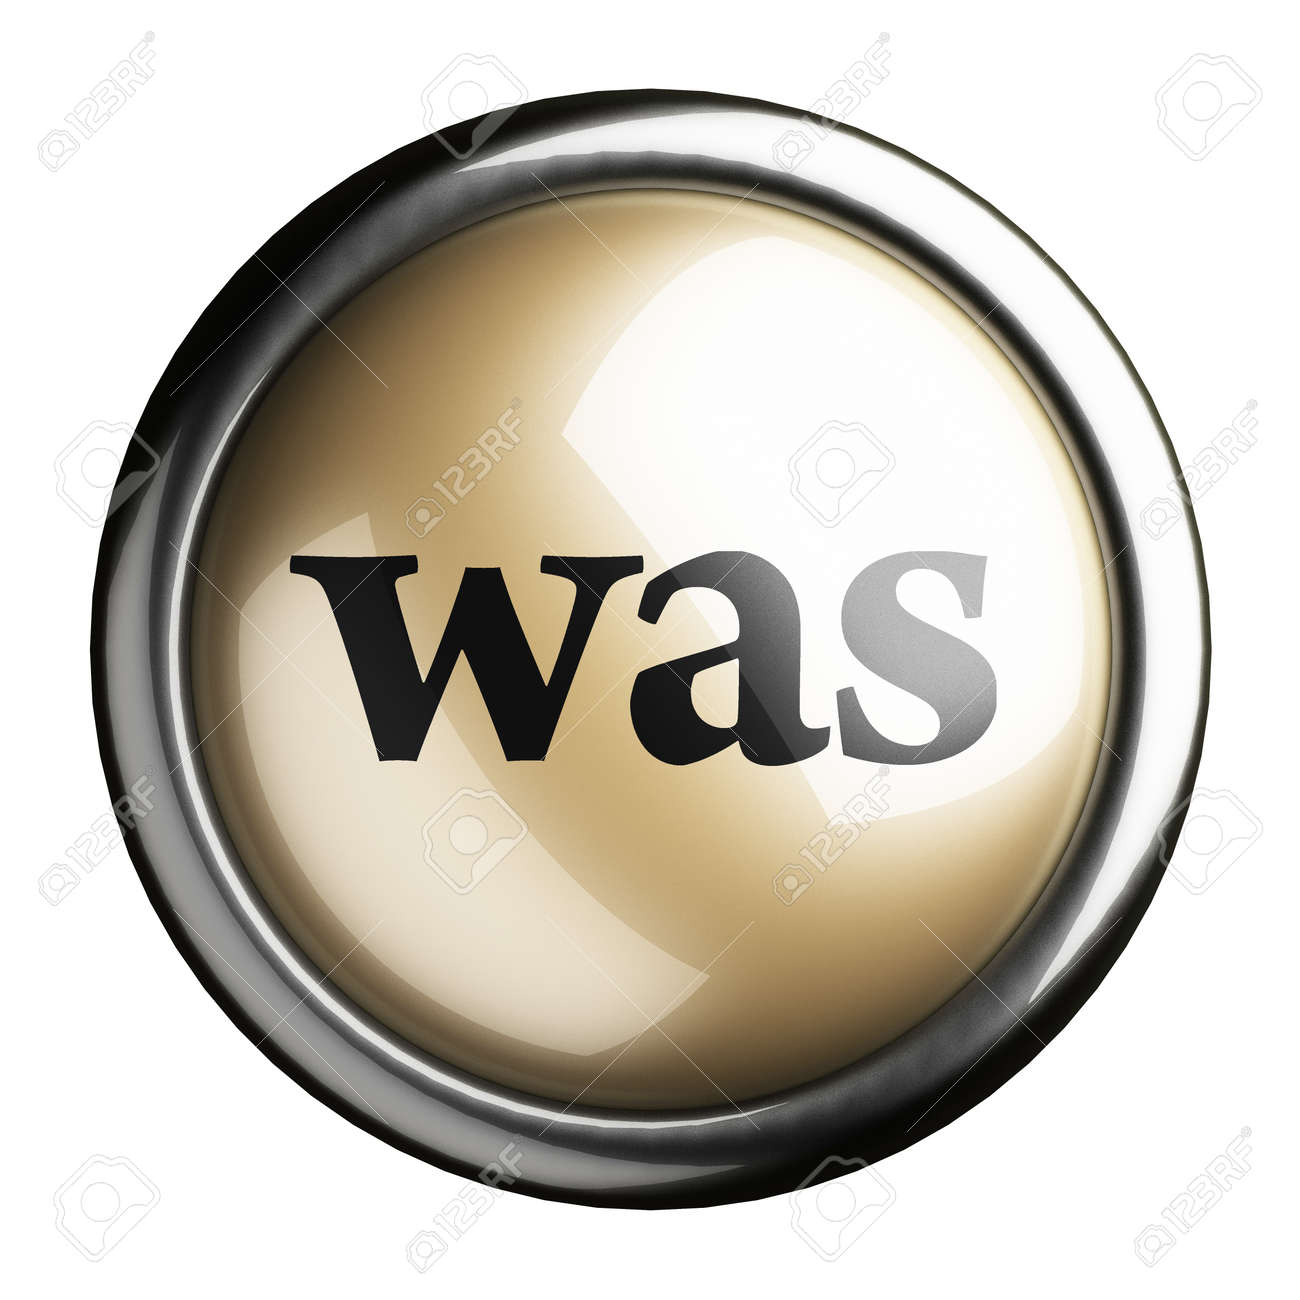 Word on the button Stock Photo - 17749413